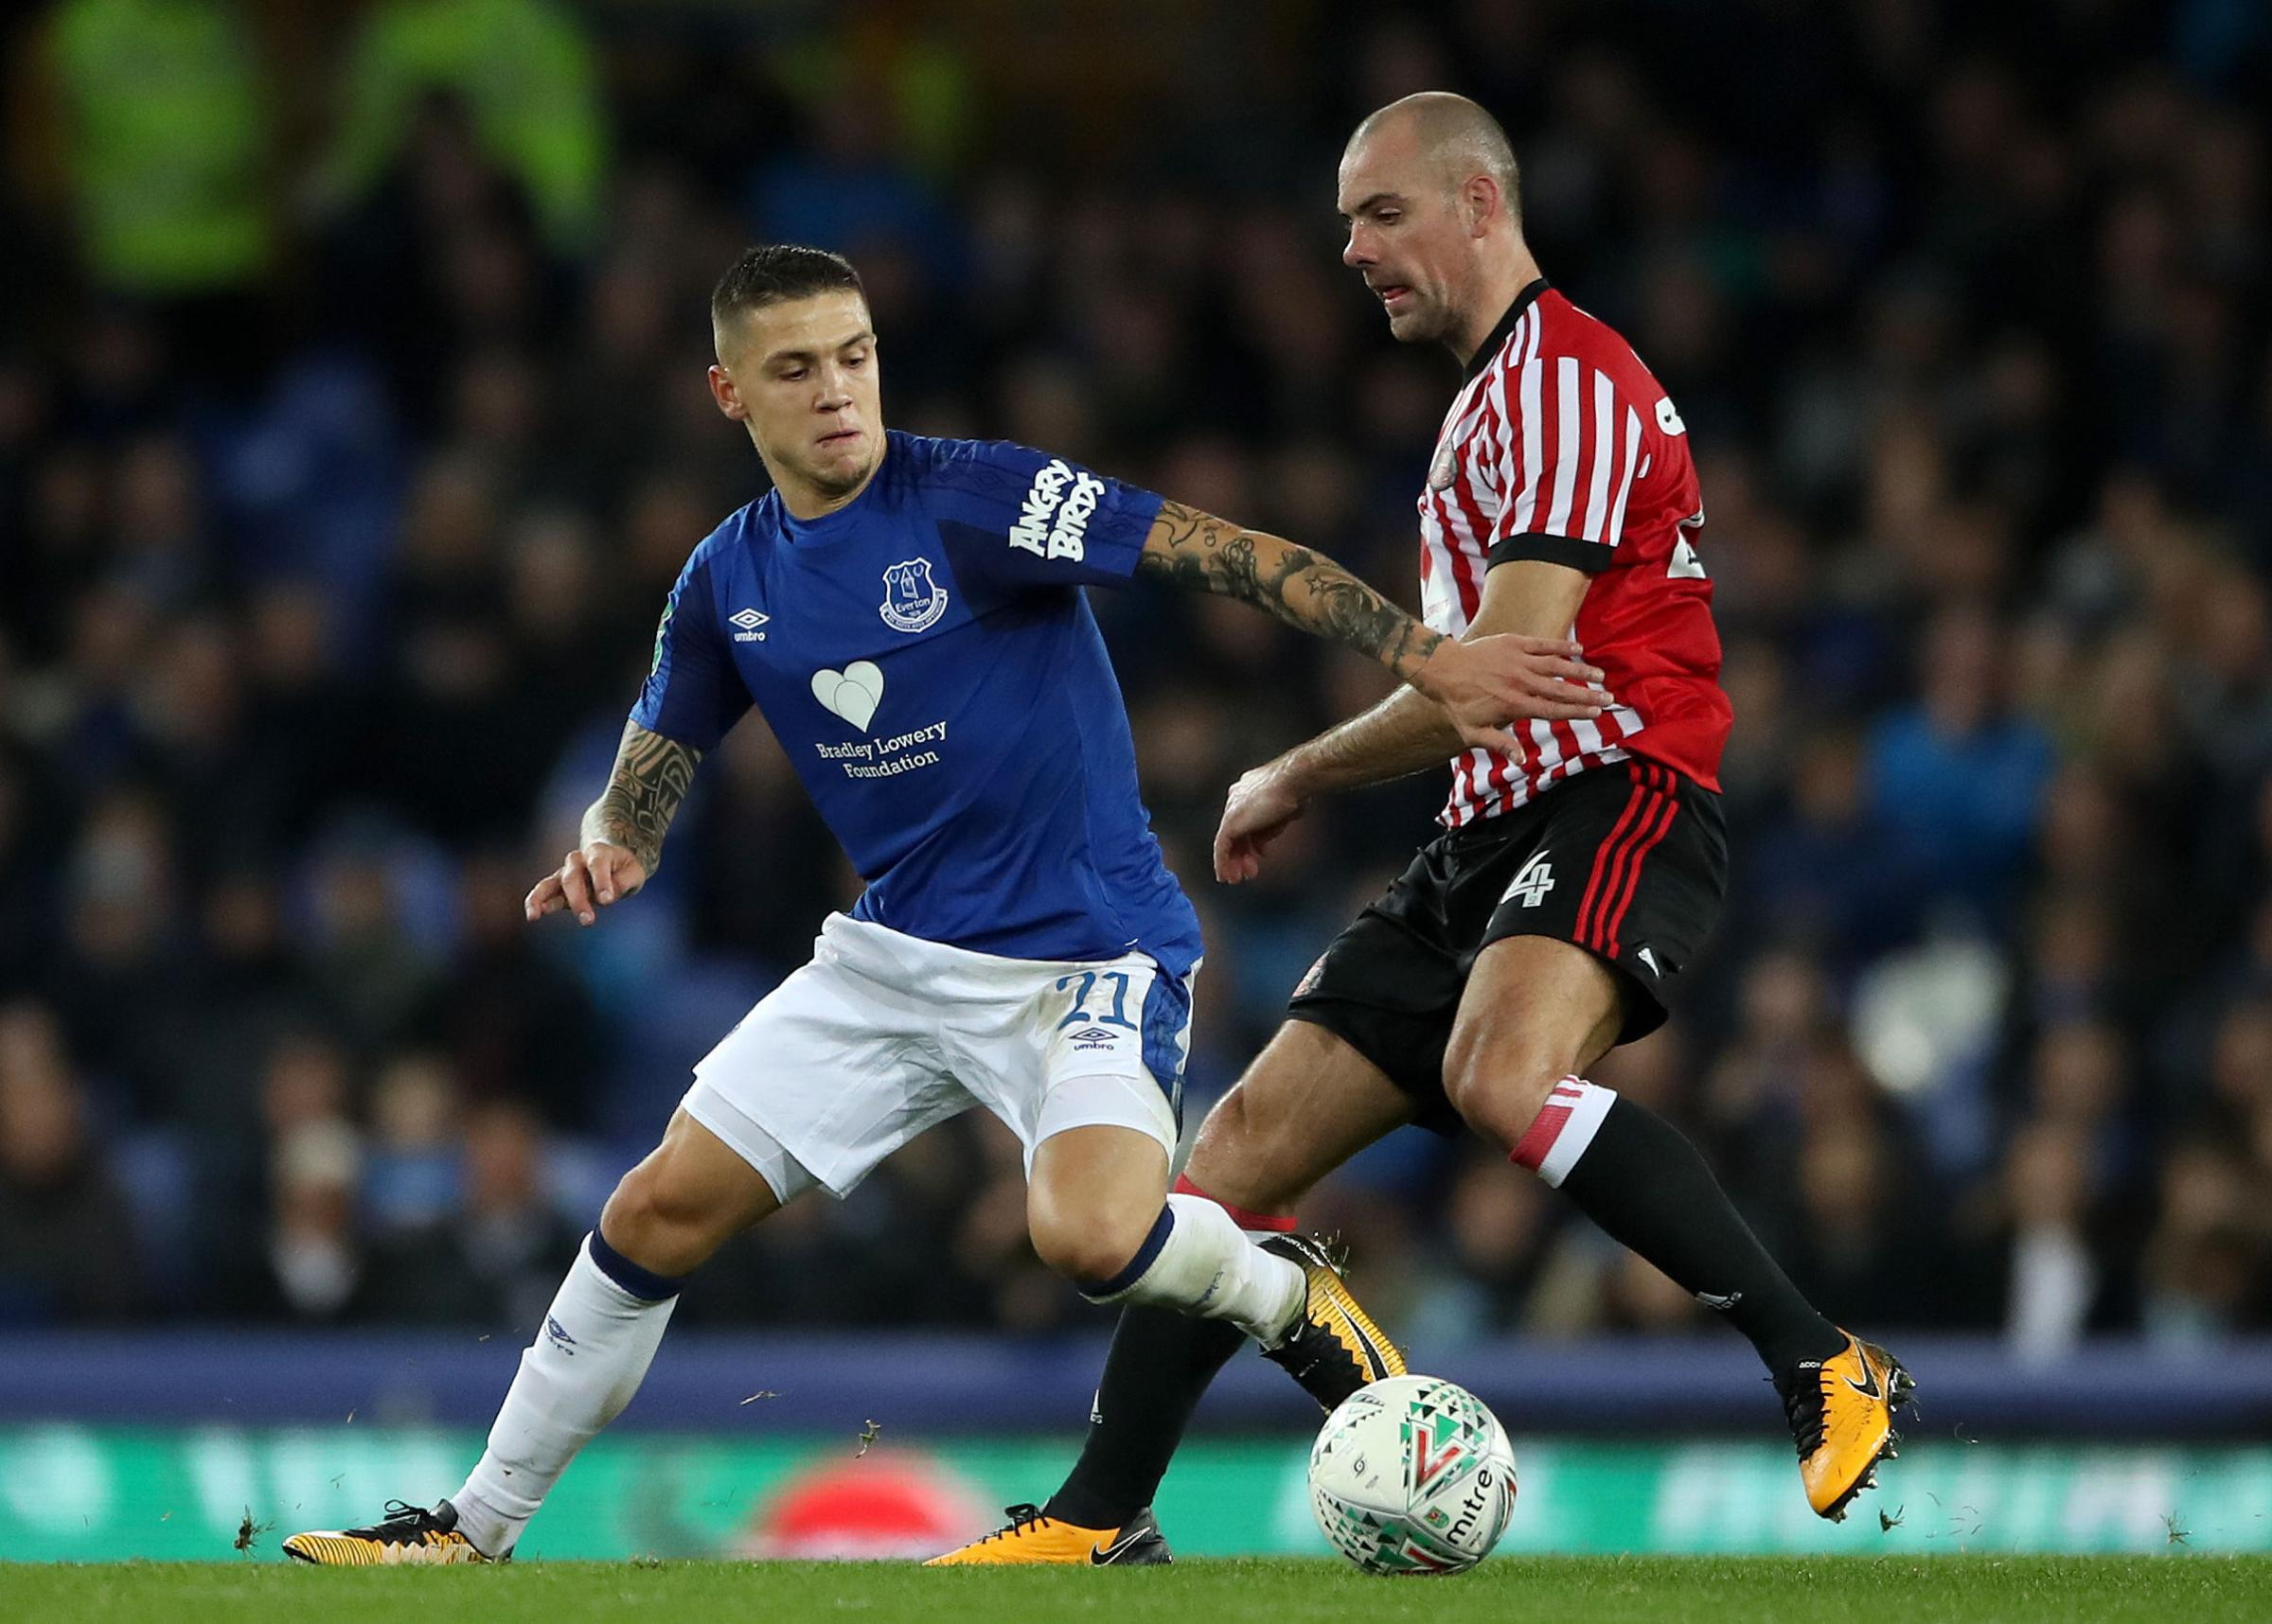 BETTER TIMES? Everton's Muhamed Besic battles with Darron Gibson and the Sunderland man is starting to think things might be turning.